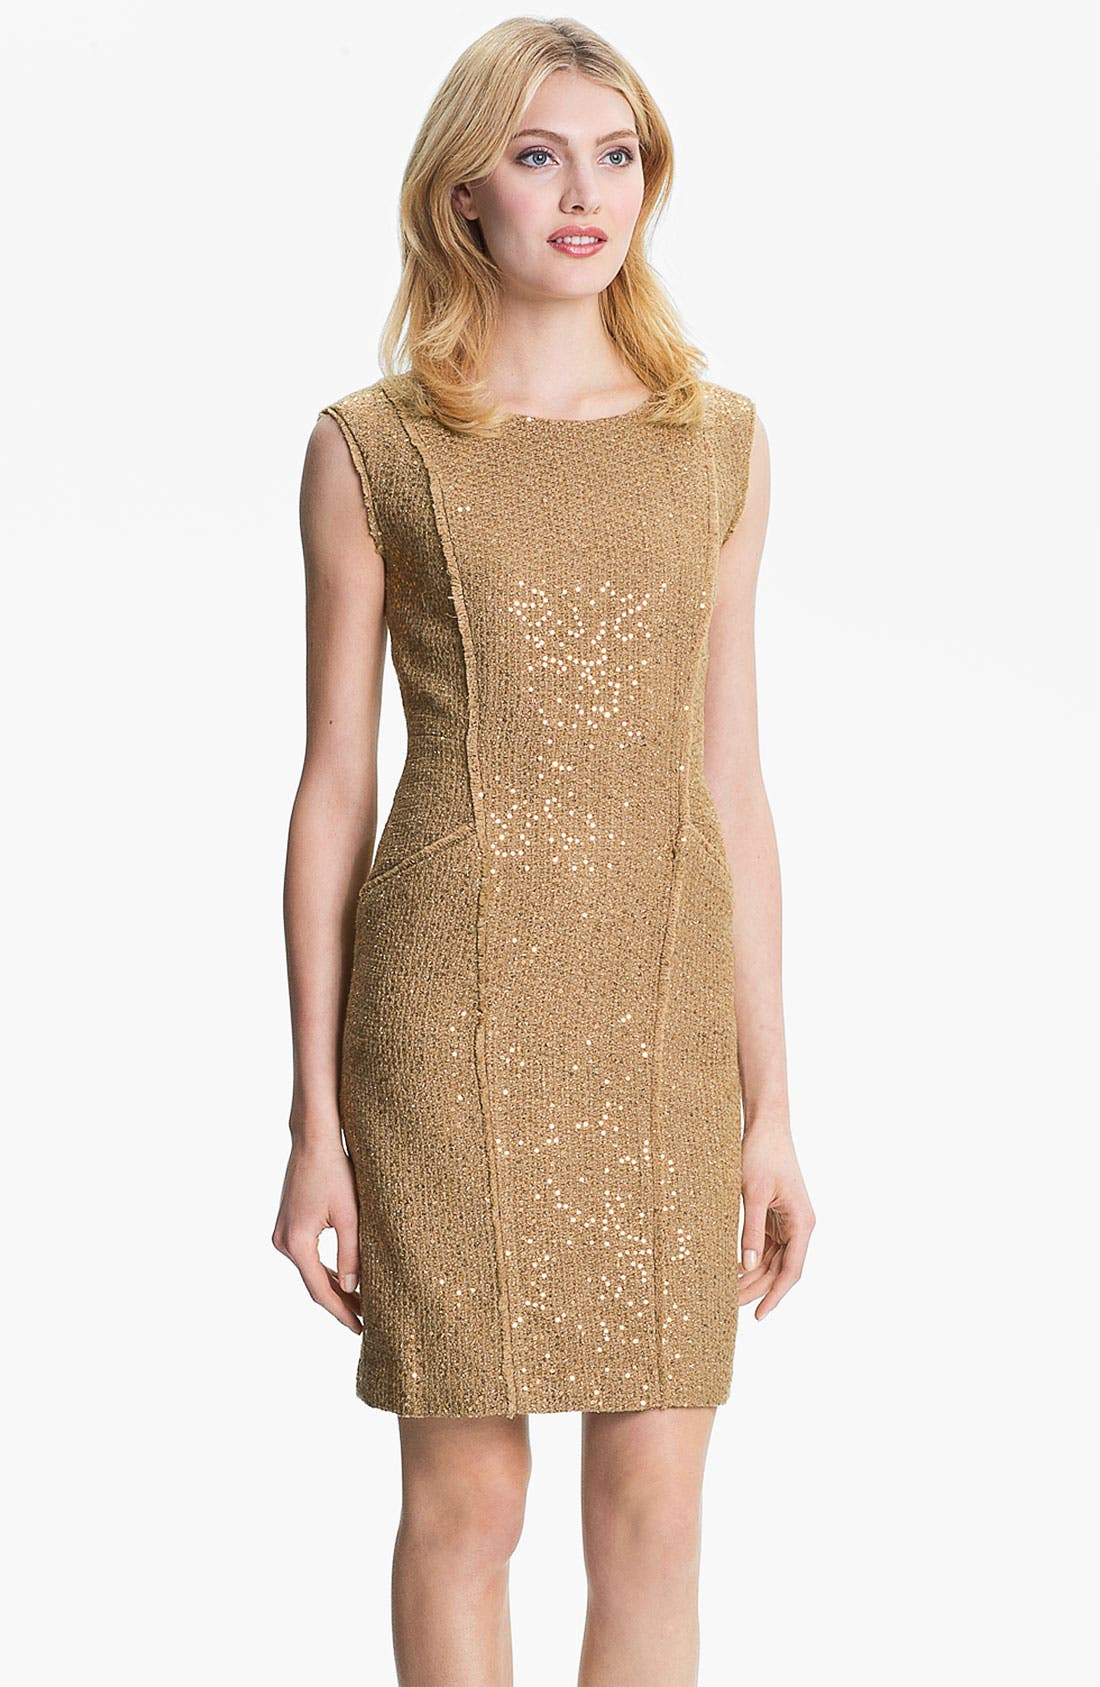 Alternate Image 1 Selected - MICHAEL Michael Kors Fray Edge Sheath Dress (Petite)